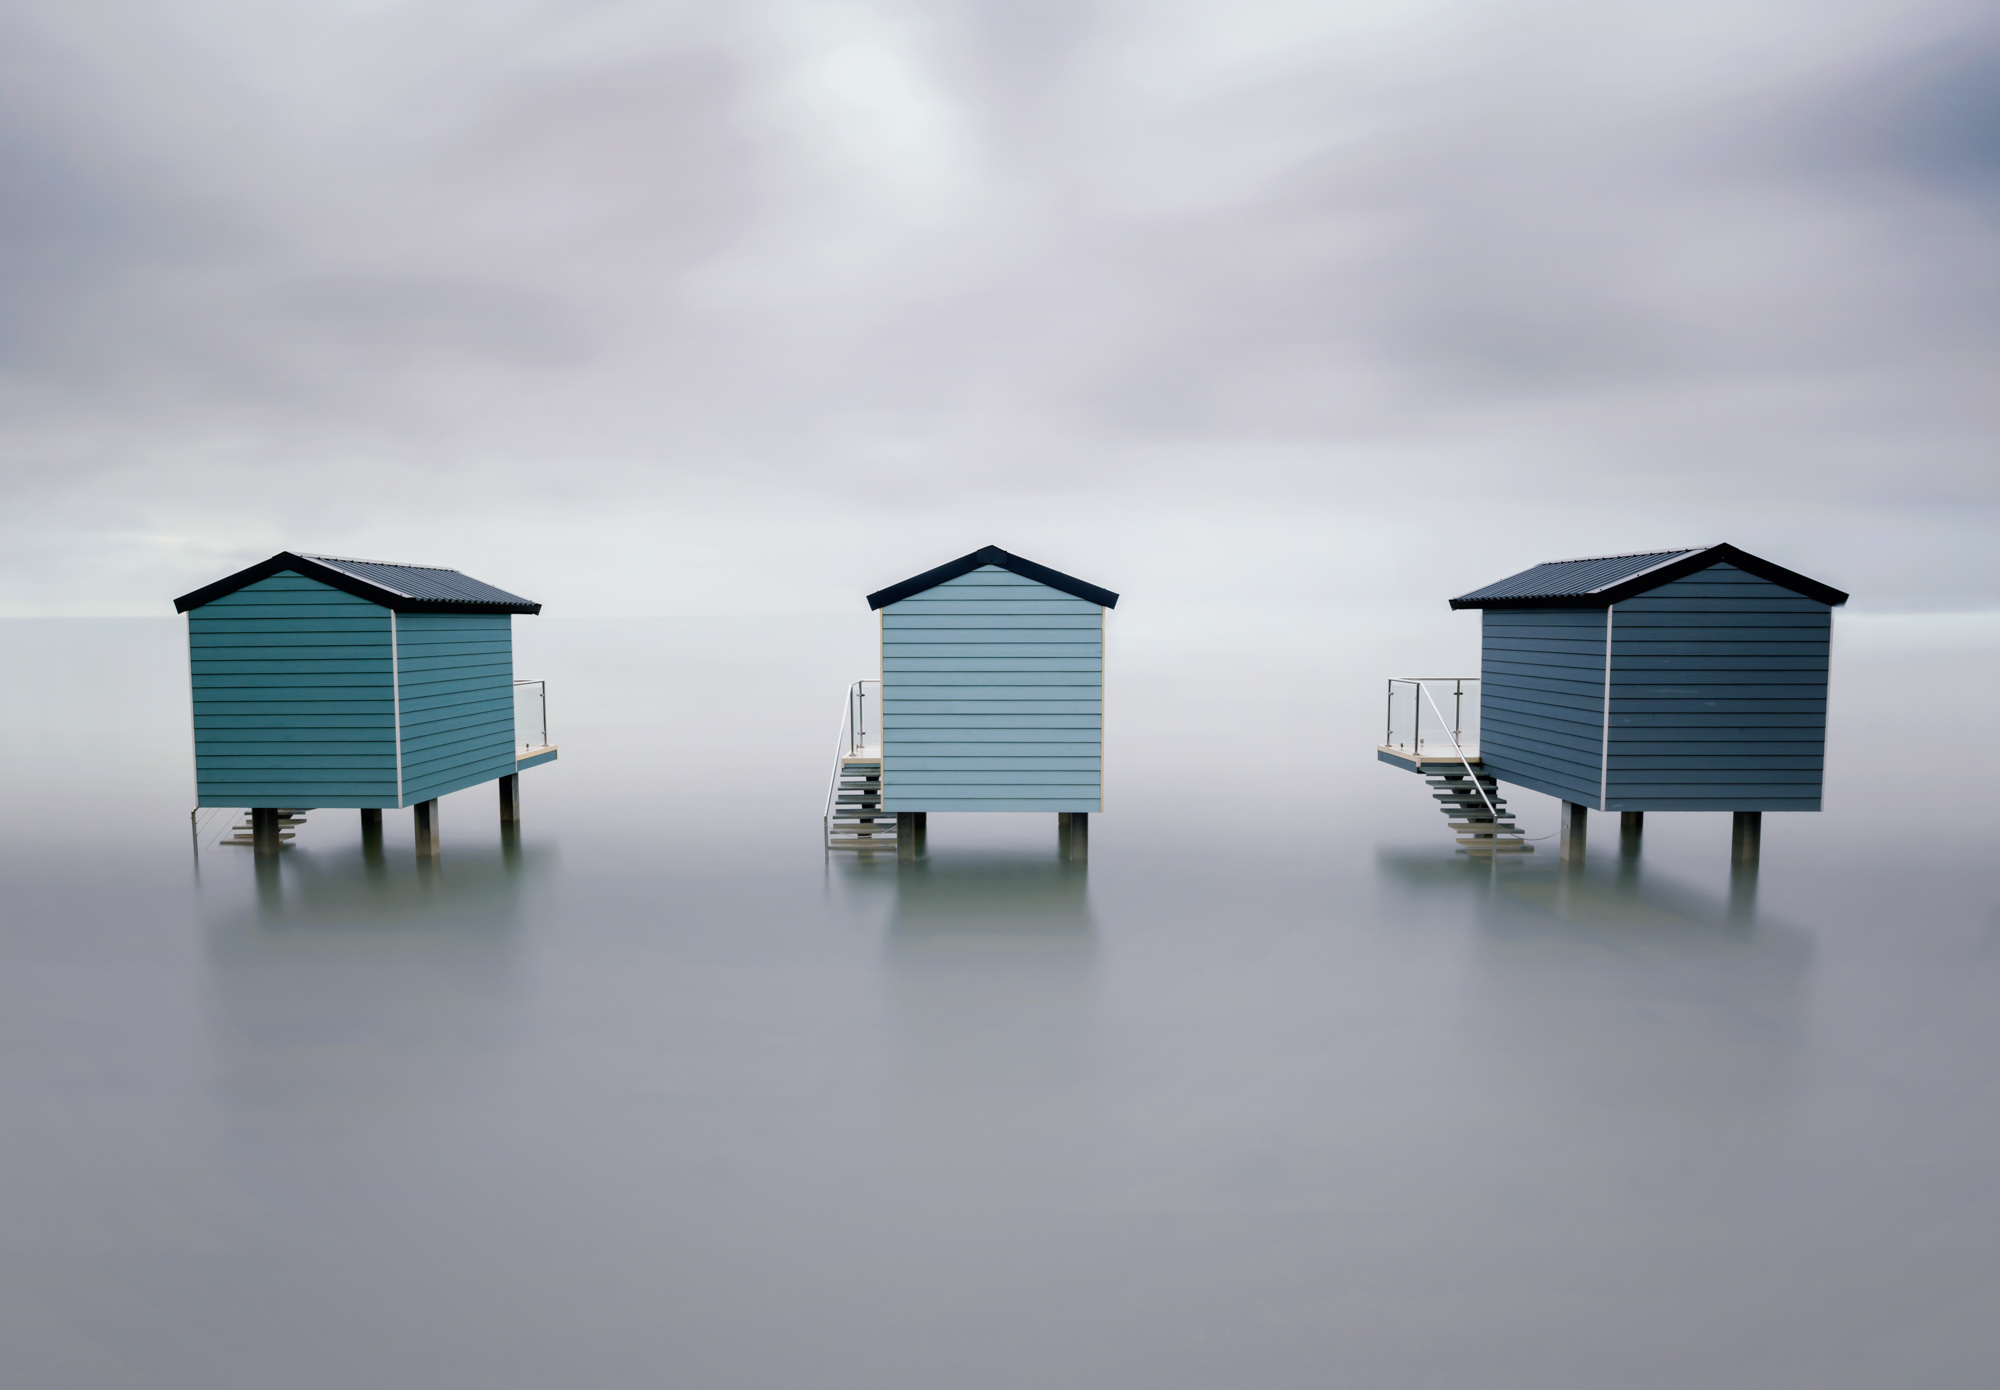 minimal long exposure photograph of three fishing huts in the ocean in the UK